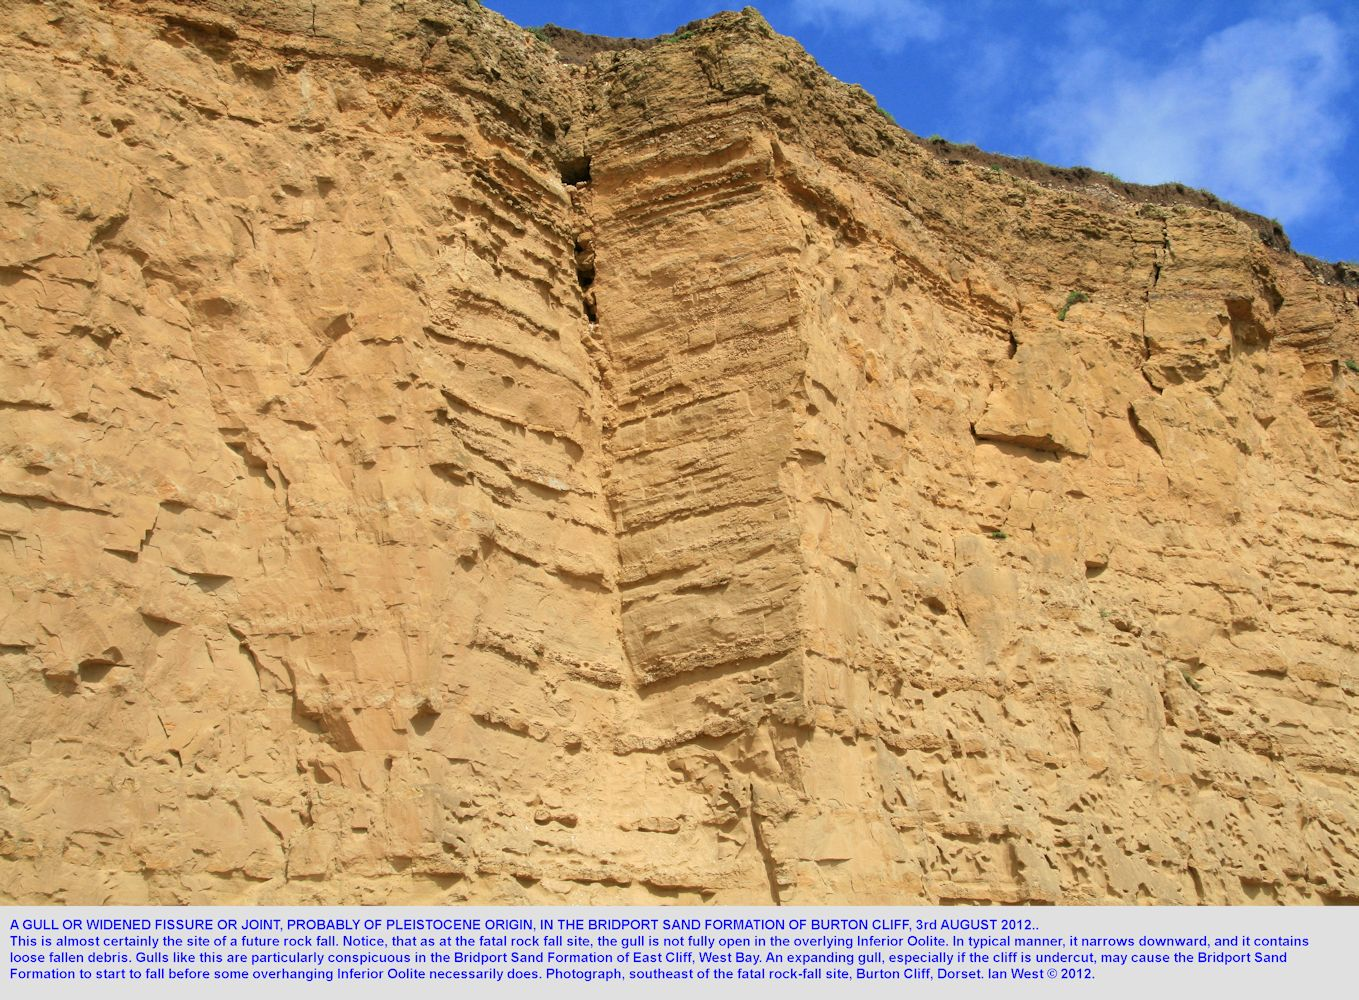 A gull at a projecting section of Bridport Sand Formation, Burton Cliff, a piece which may fall later